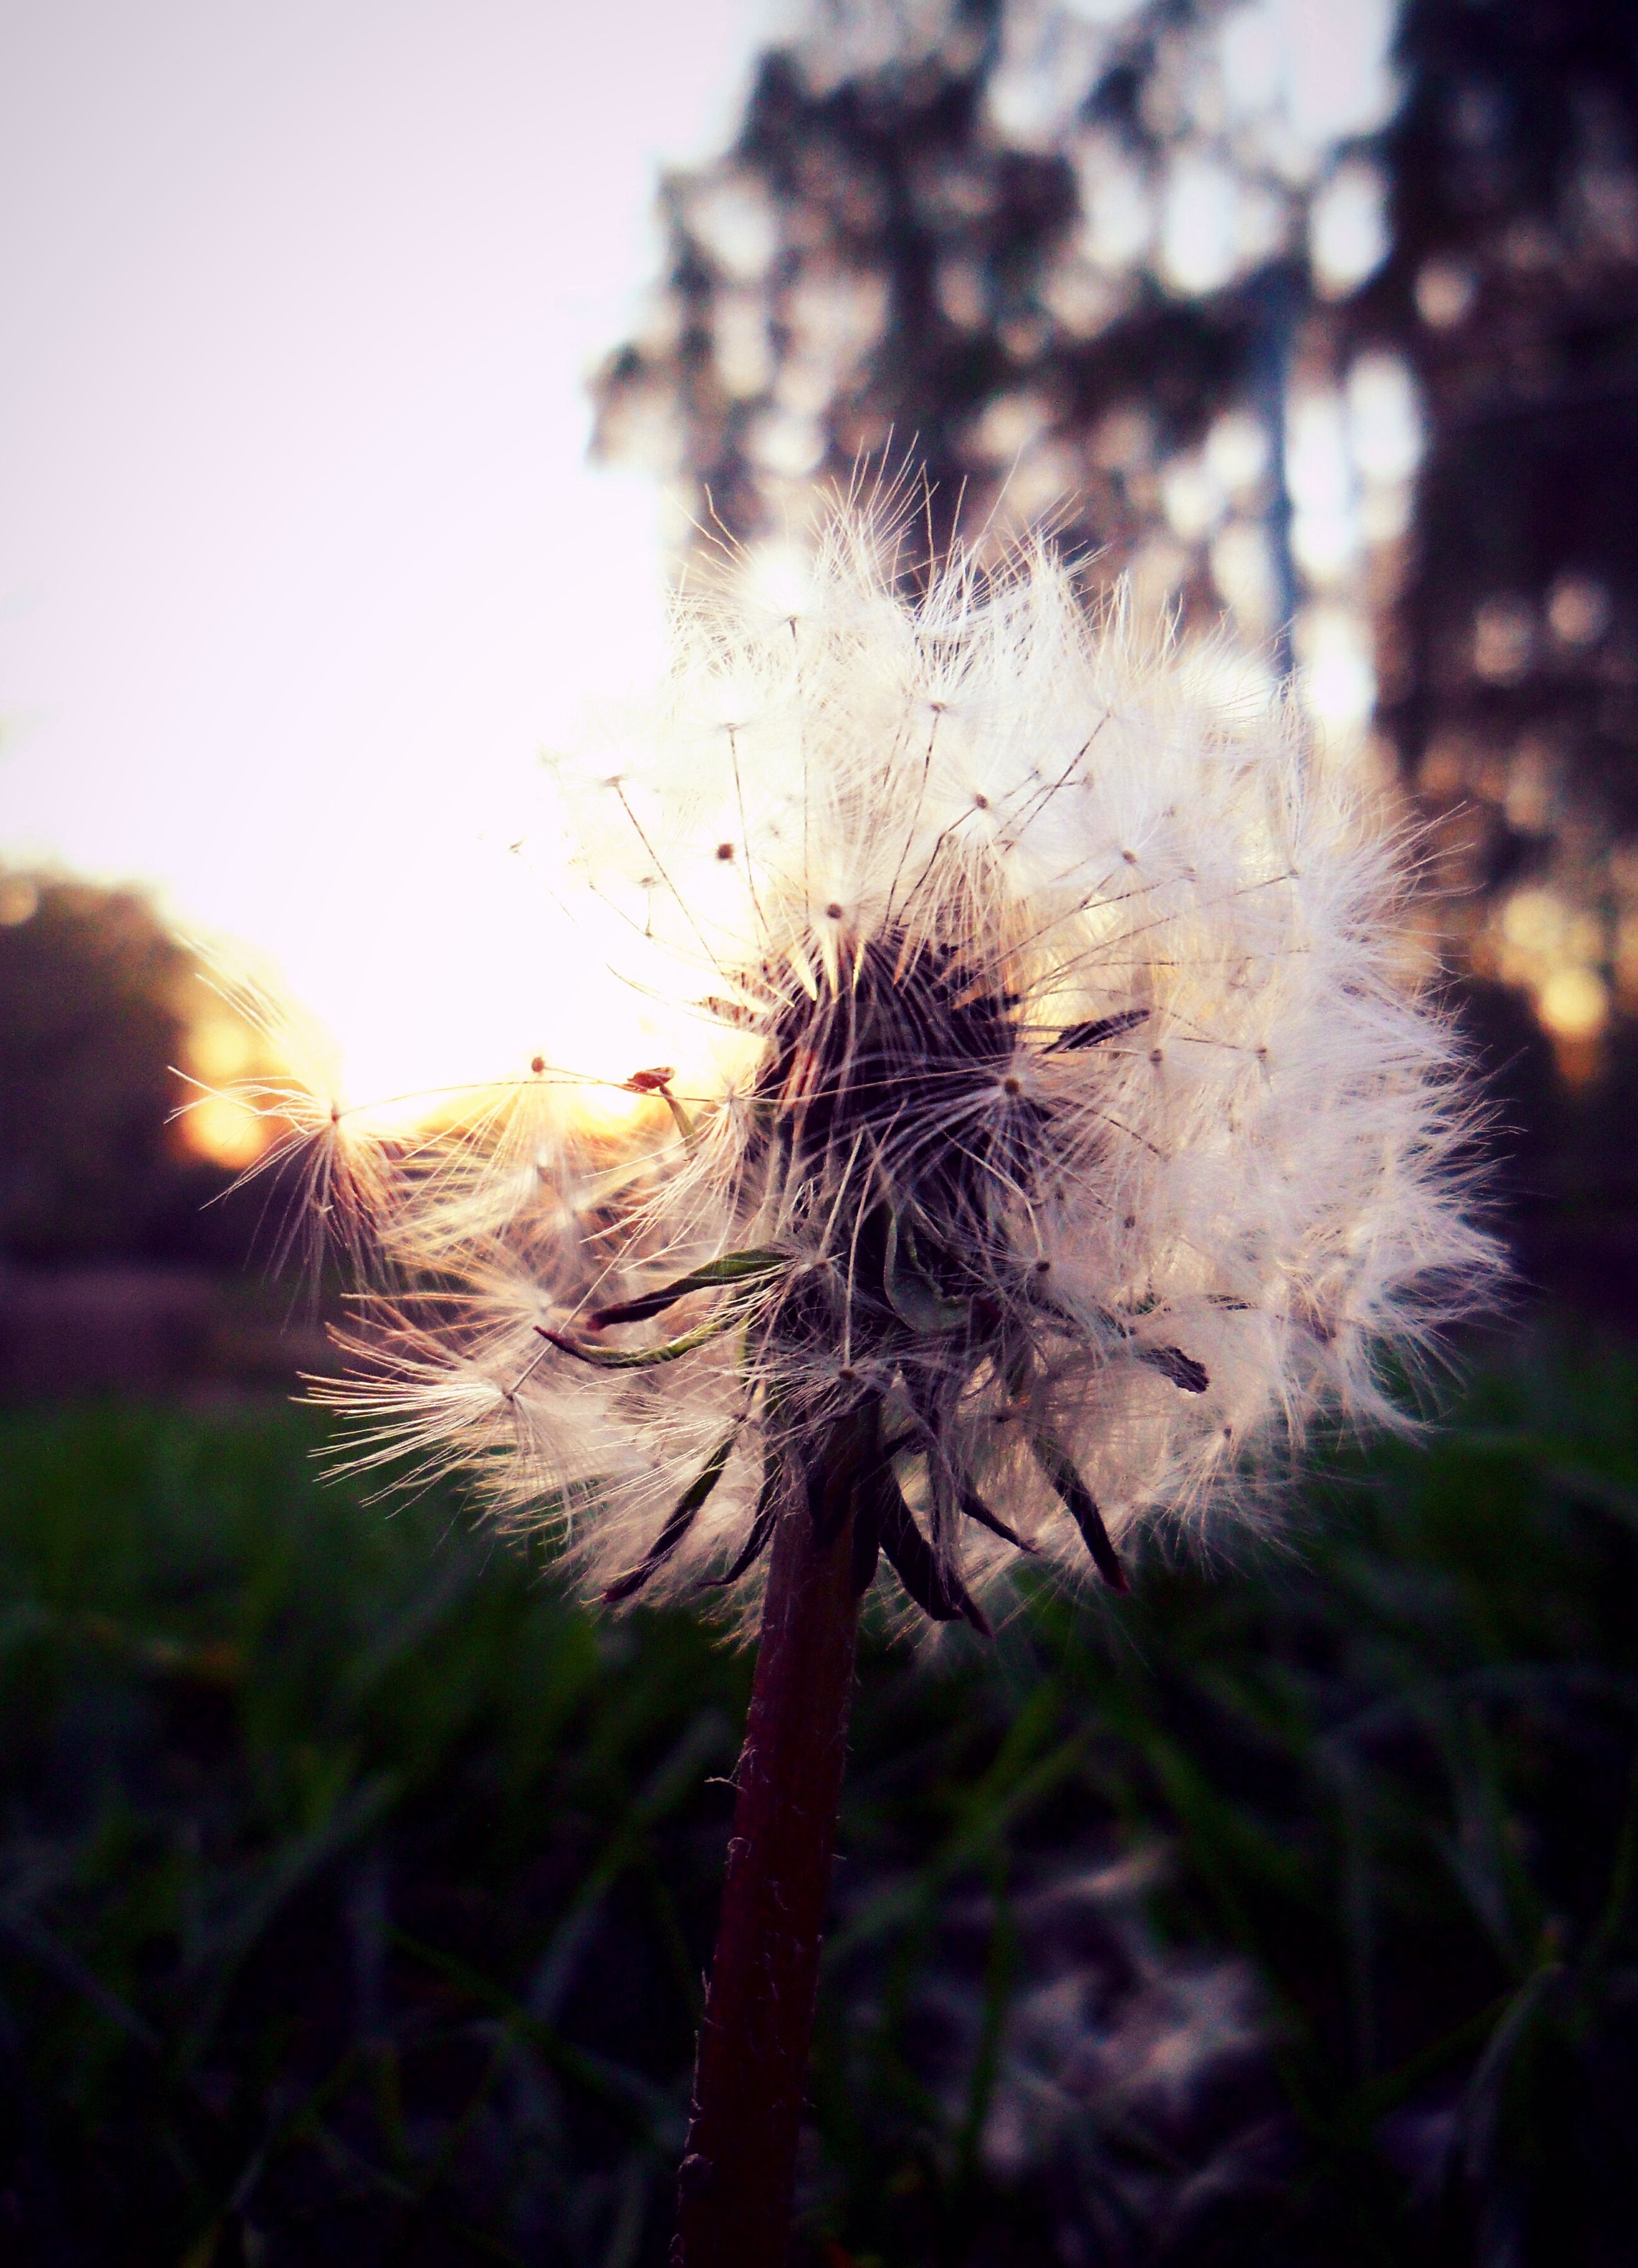 dandelion, growth, flower, fragility, focus on foreground, close-up, nature, freshness, beauty in nature, stem, plant, flower head, uncultivated, sky, outdoors, dandelion seed, no people, day, tranquility, selective focus, softness, grass, botany, growing, scenics